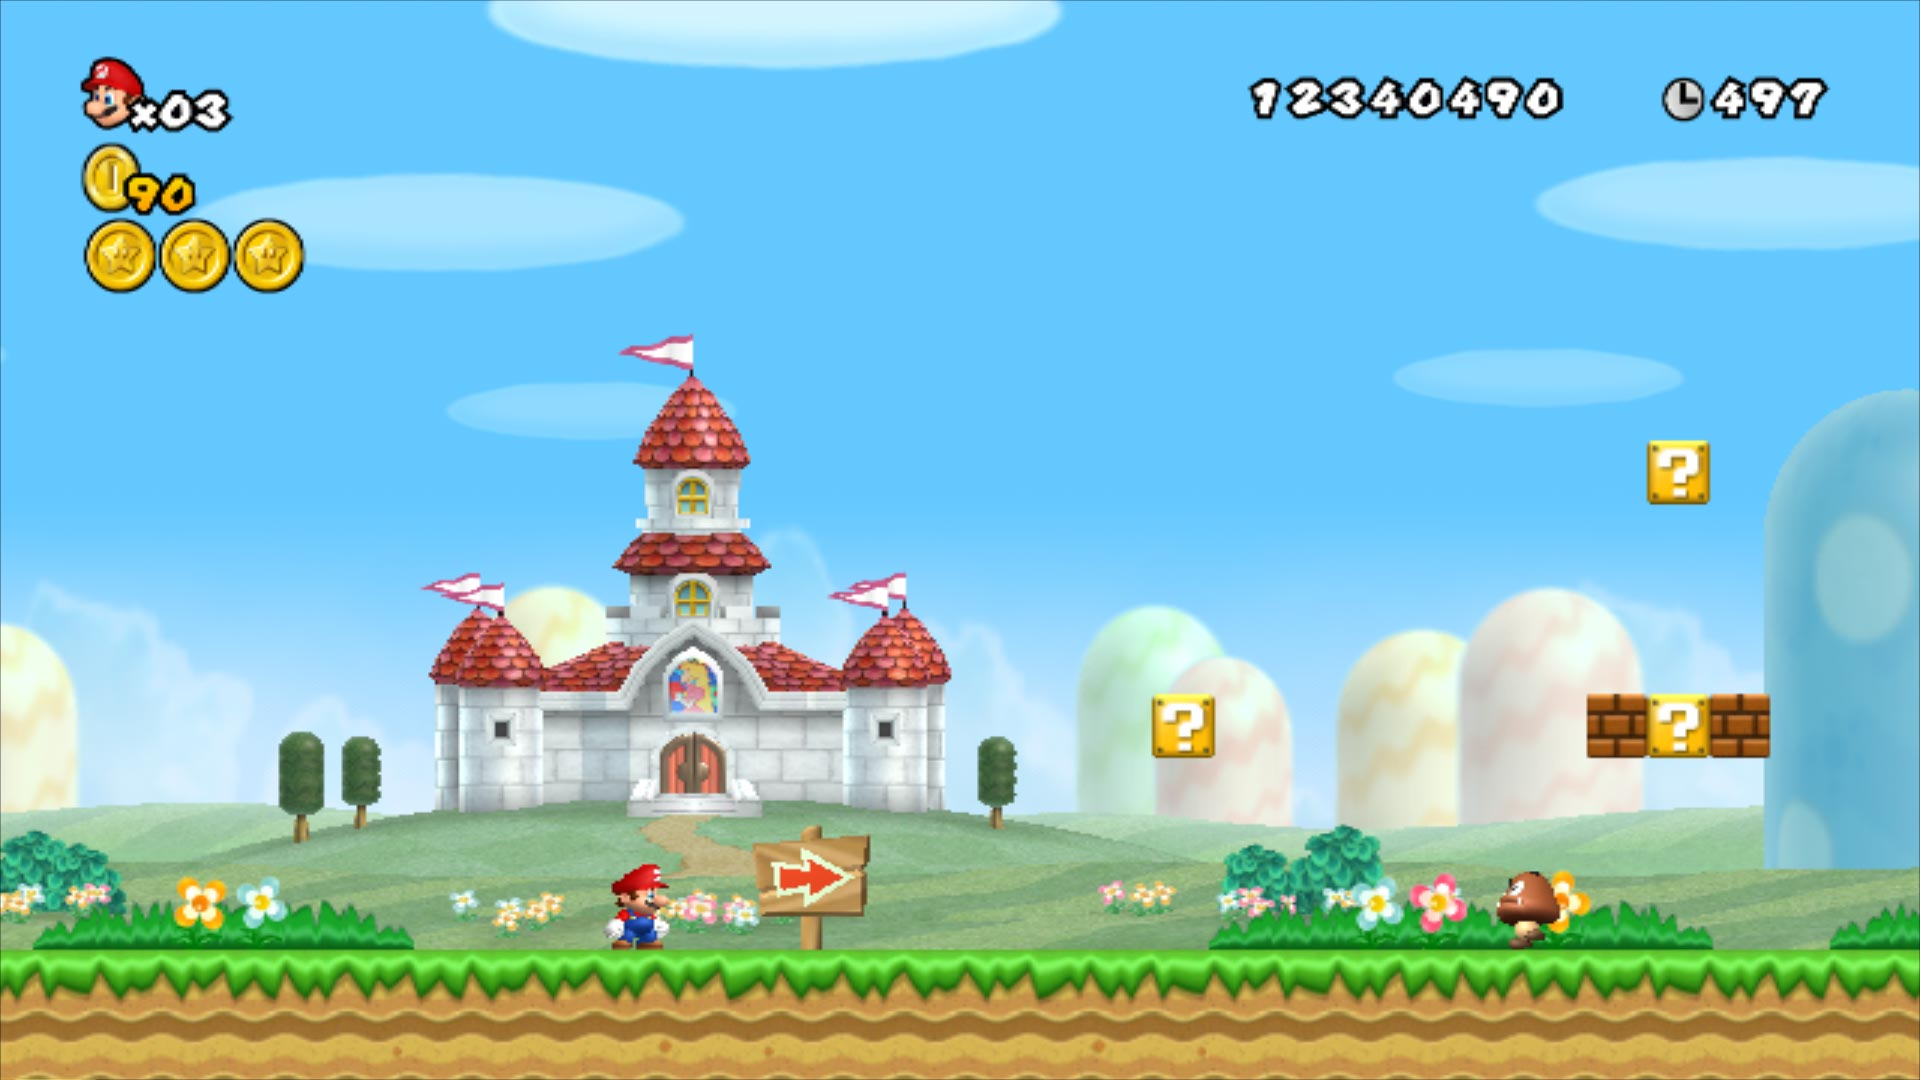 The first level of New Super Mario Bros Wii.